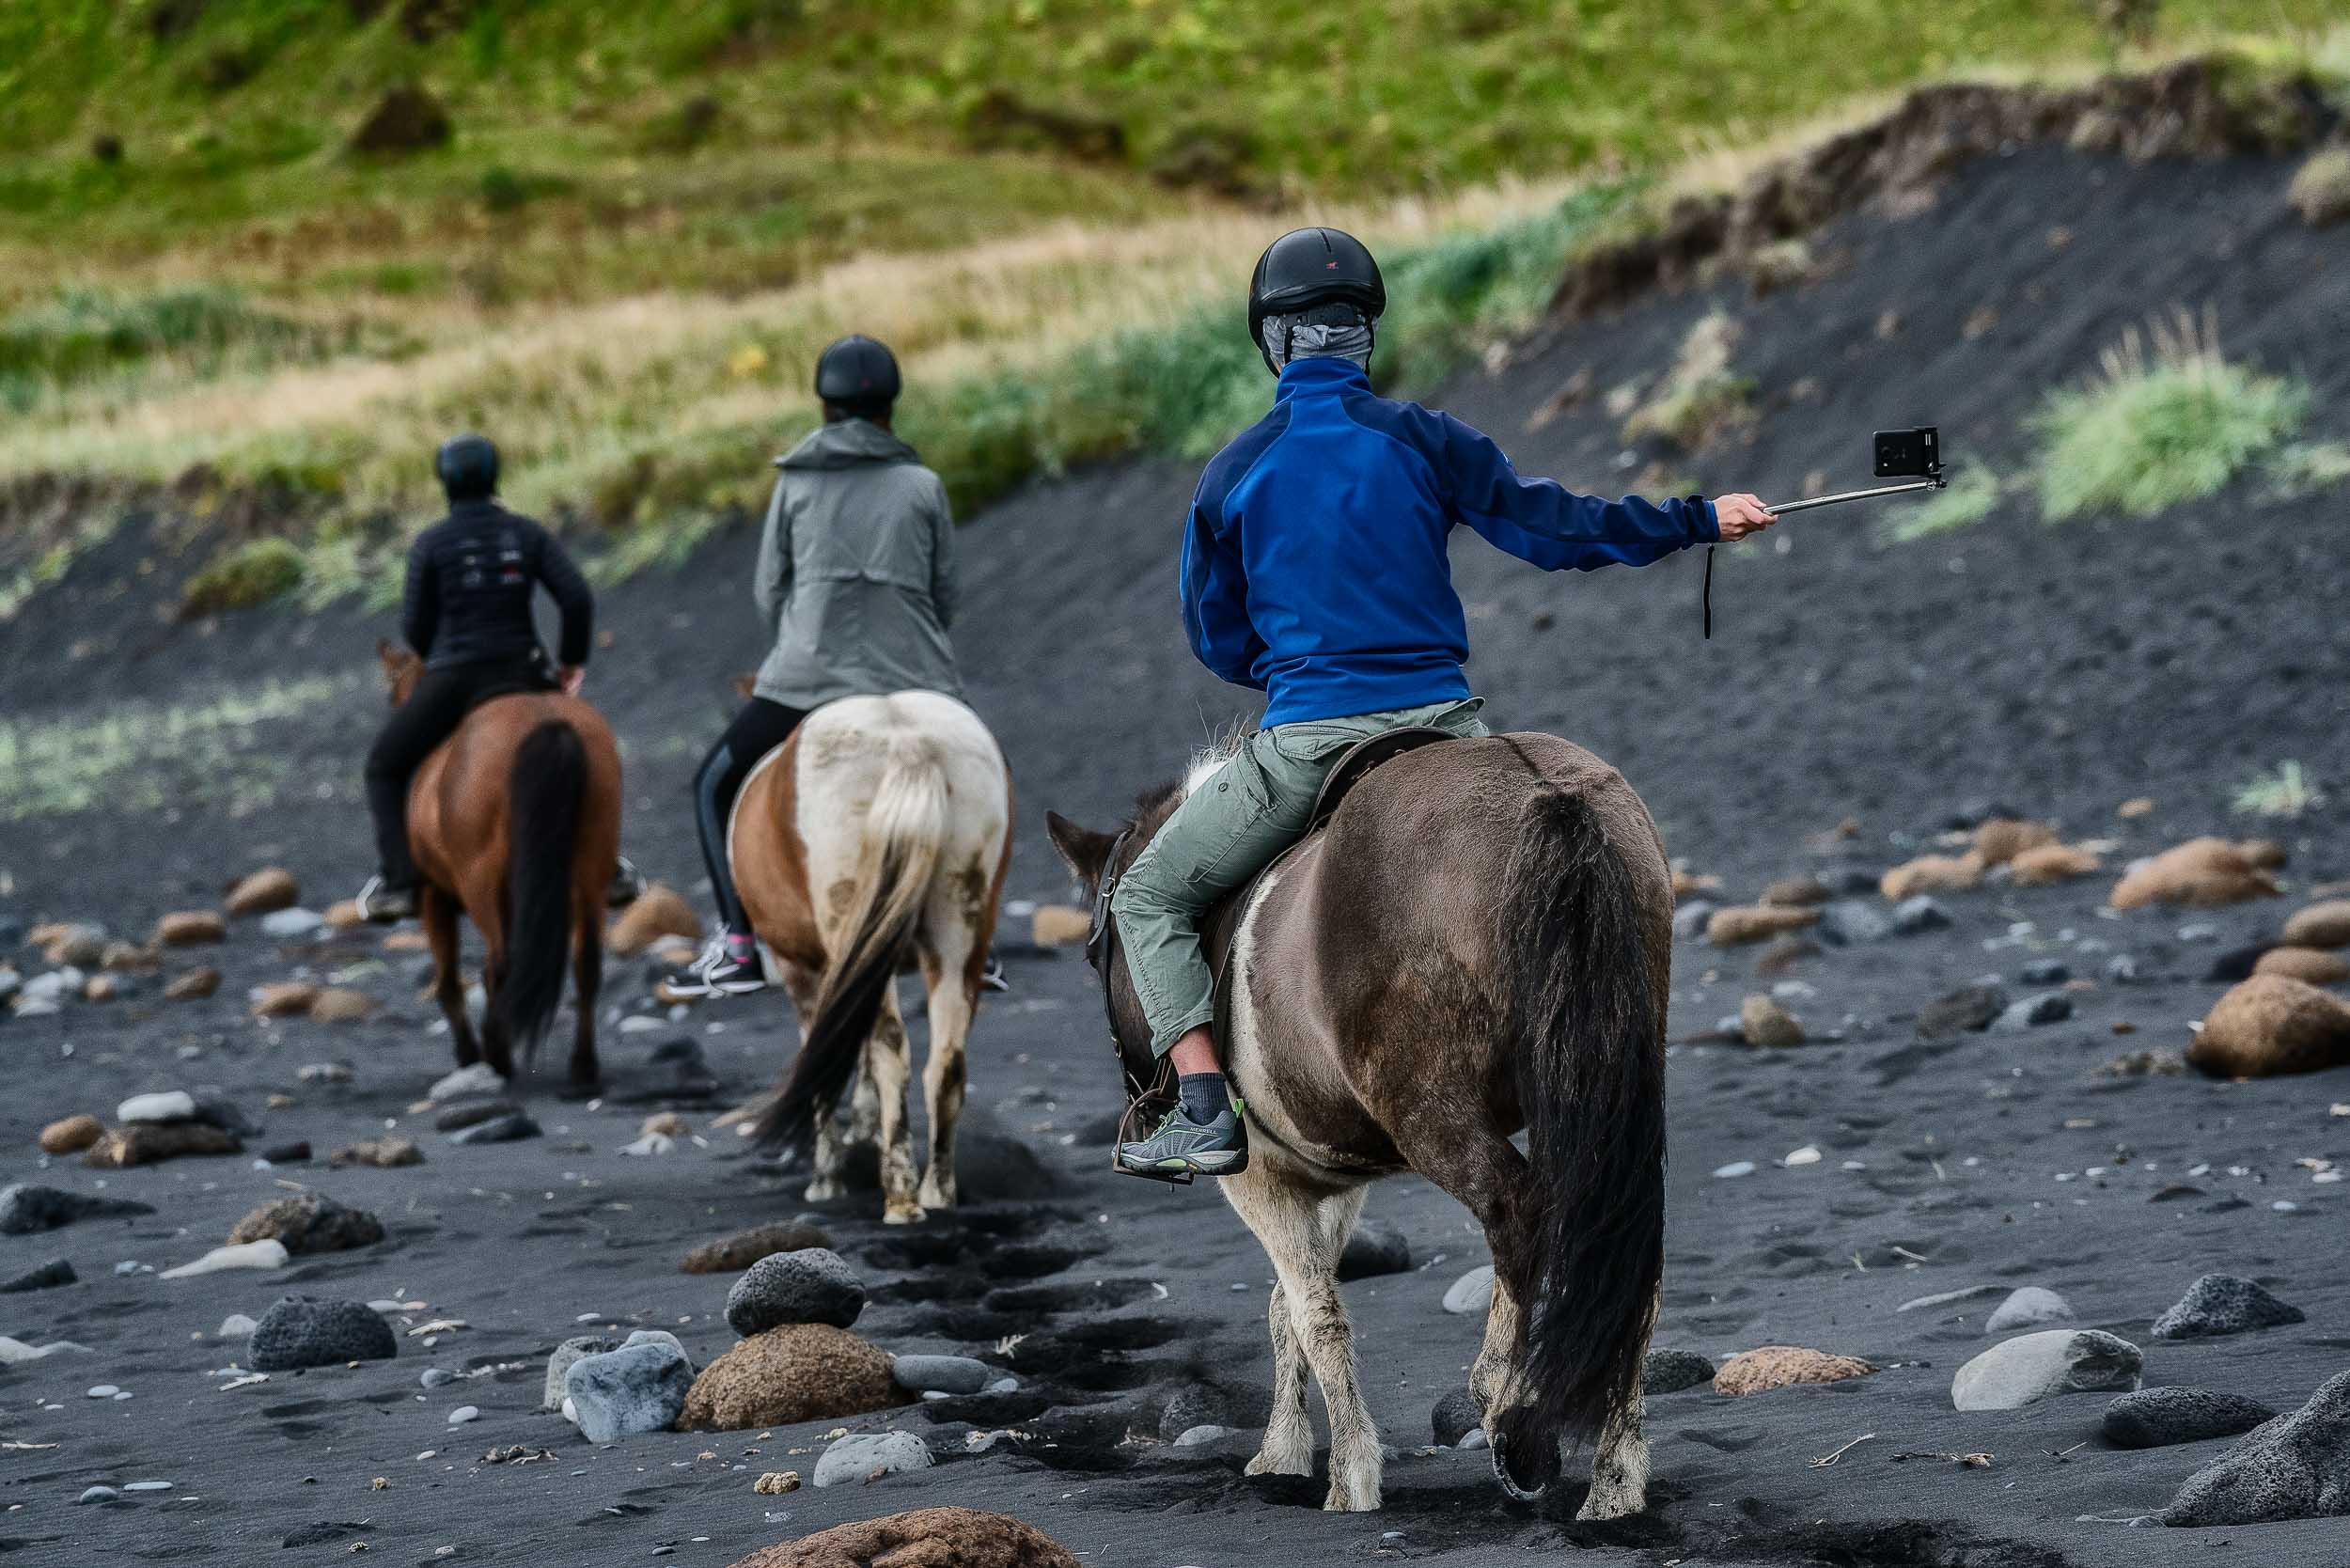 I'd composed what I thought was a good photo of    three horse riders    on the black sand beach of    Reynisfjara near Vik    in south eastern    Iceland   . Just as I was about to make the photo one of the riders brought out the selfie stick, which changed the narrative and enhanced the story being told.